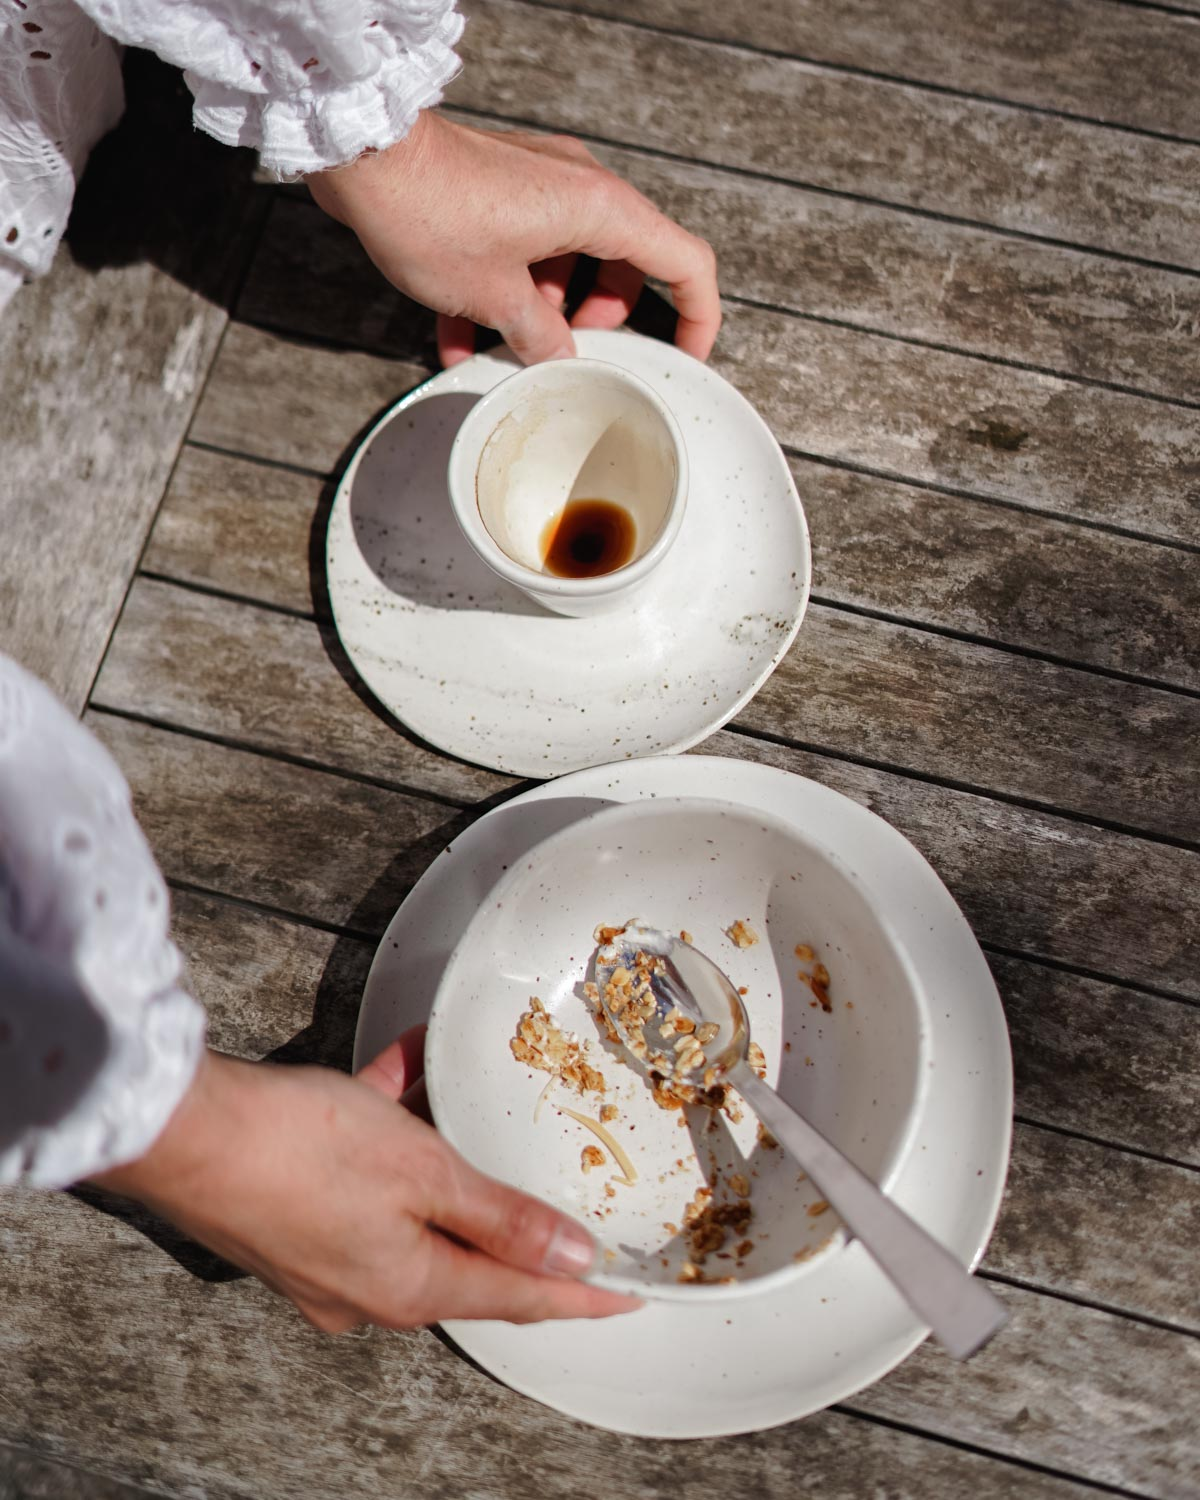 Handmade plates on a wooden table